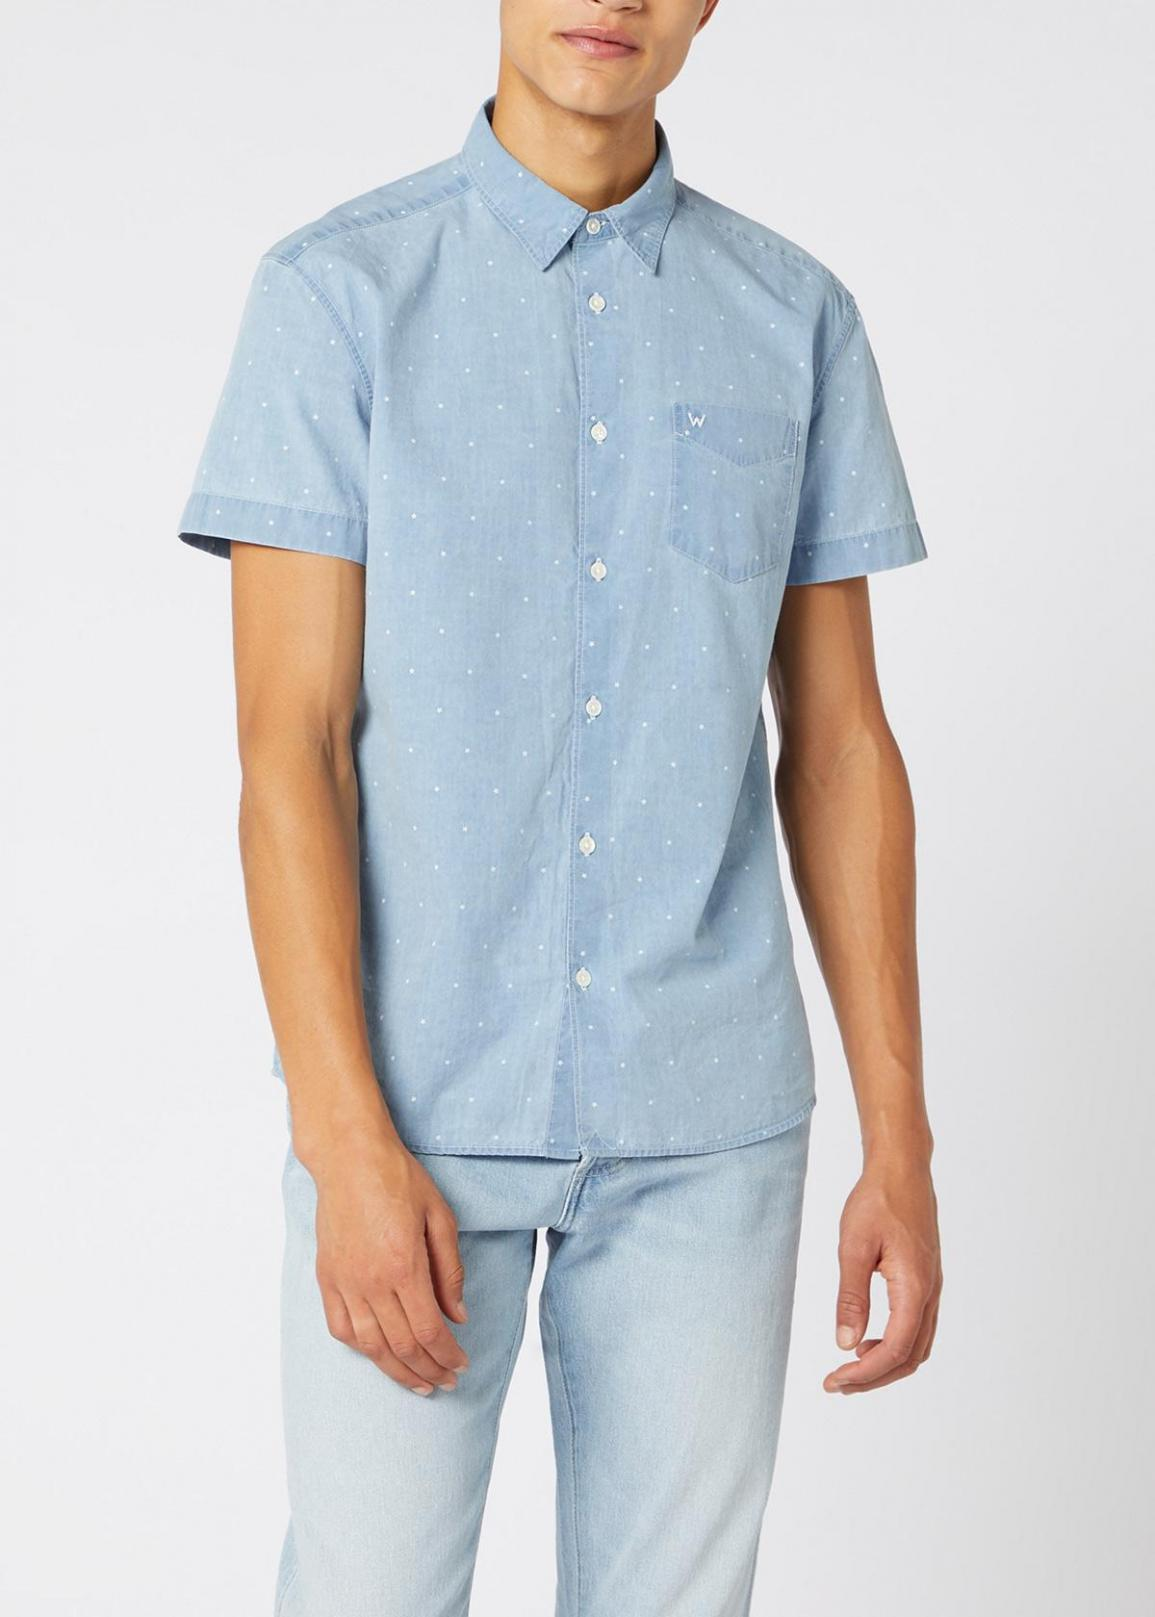 Wrangler® Short Sleeve One Pocket Shirt - Cerulean Blue